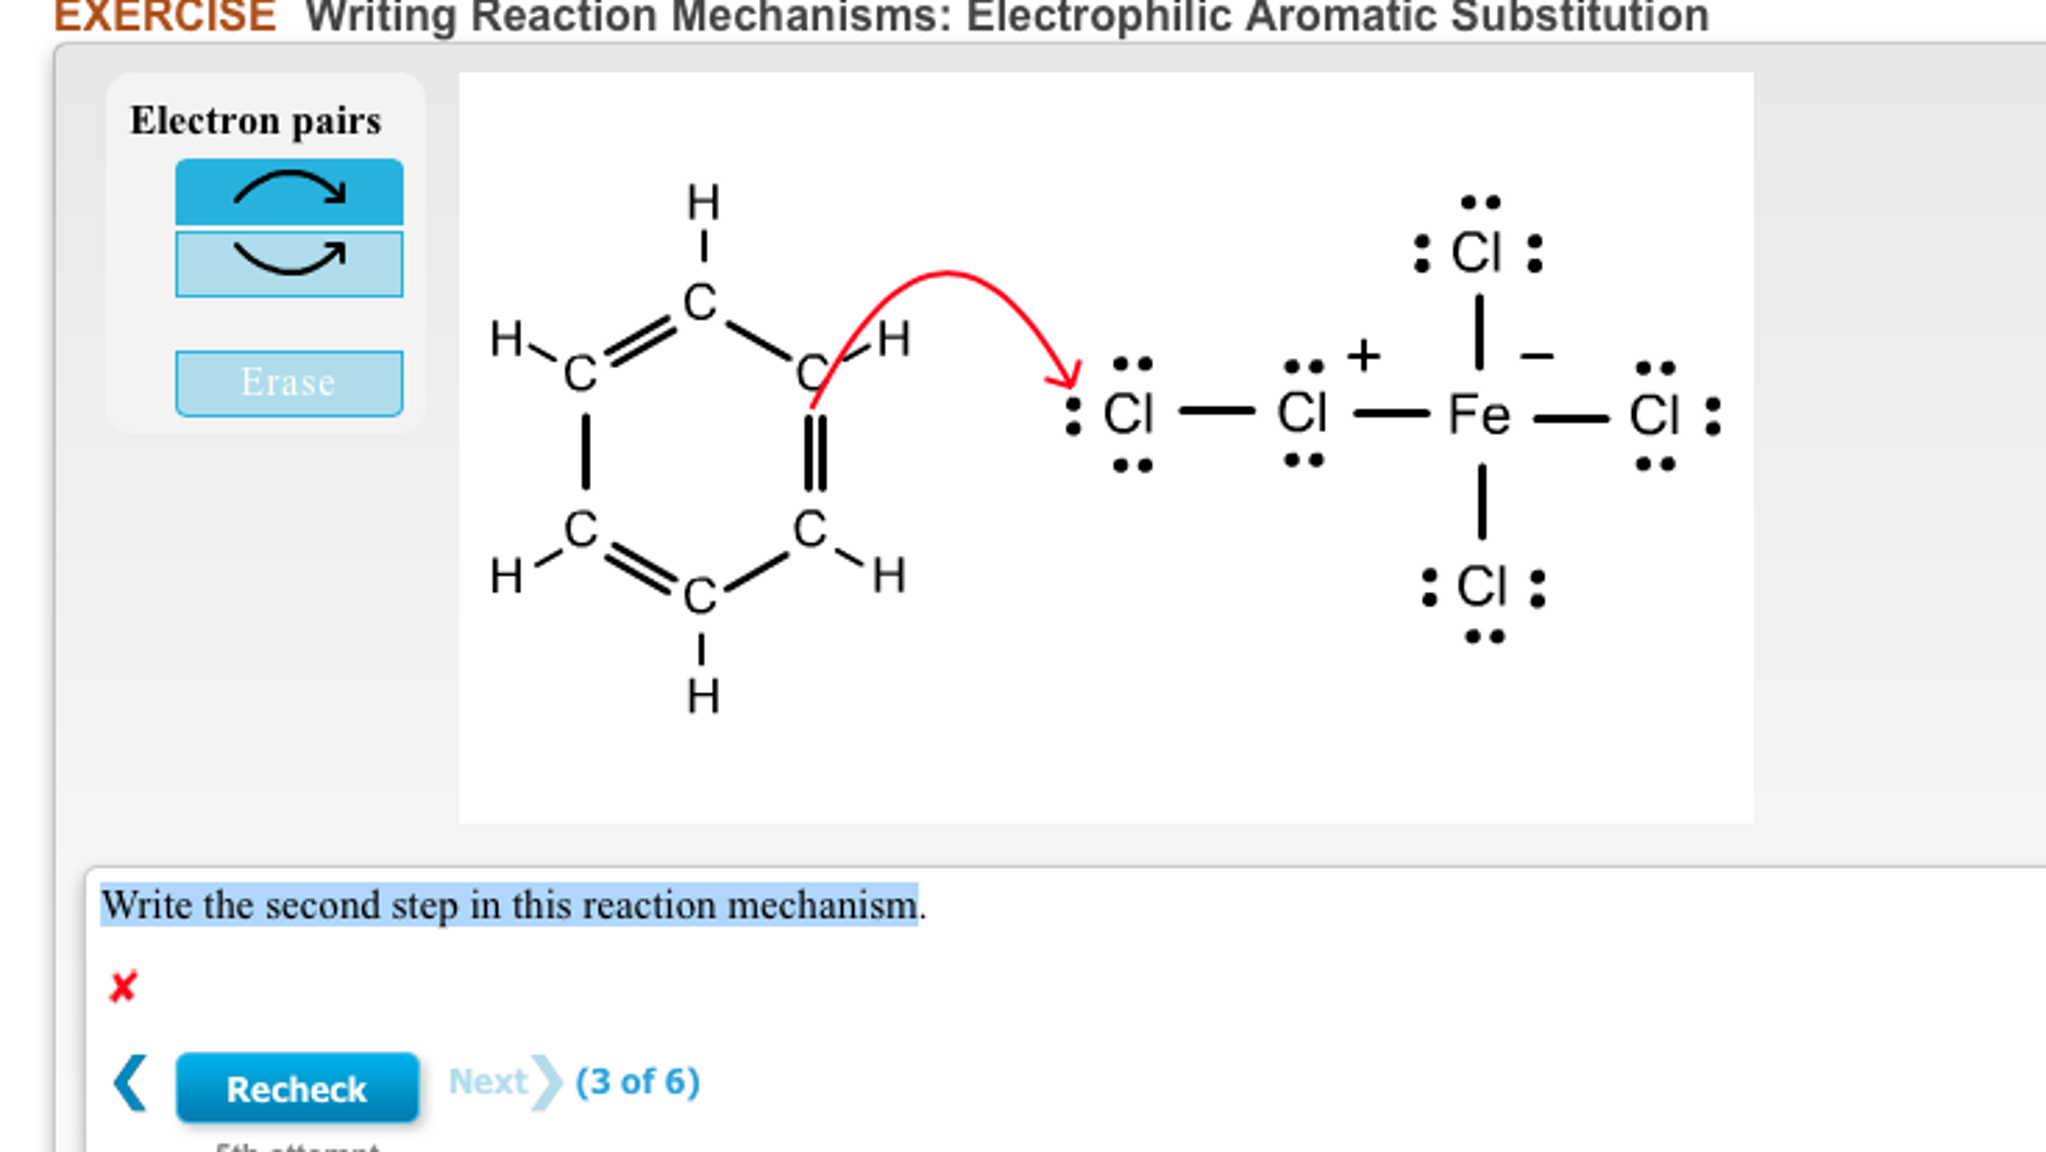 electrophilic aromatic substitution essay I'm assuming you mean to say electrophilic aromatic substitution you must know the intermediates that occur for an electrophilic aromatic substitution reaction for benzene based on those, try drawing the resonance structures for pyridine (at all positions separately) you end up with a.